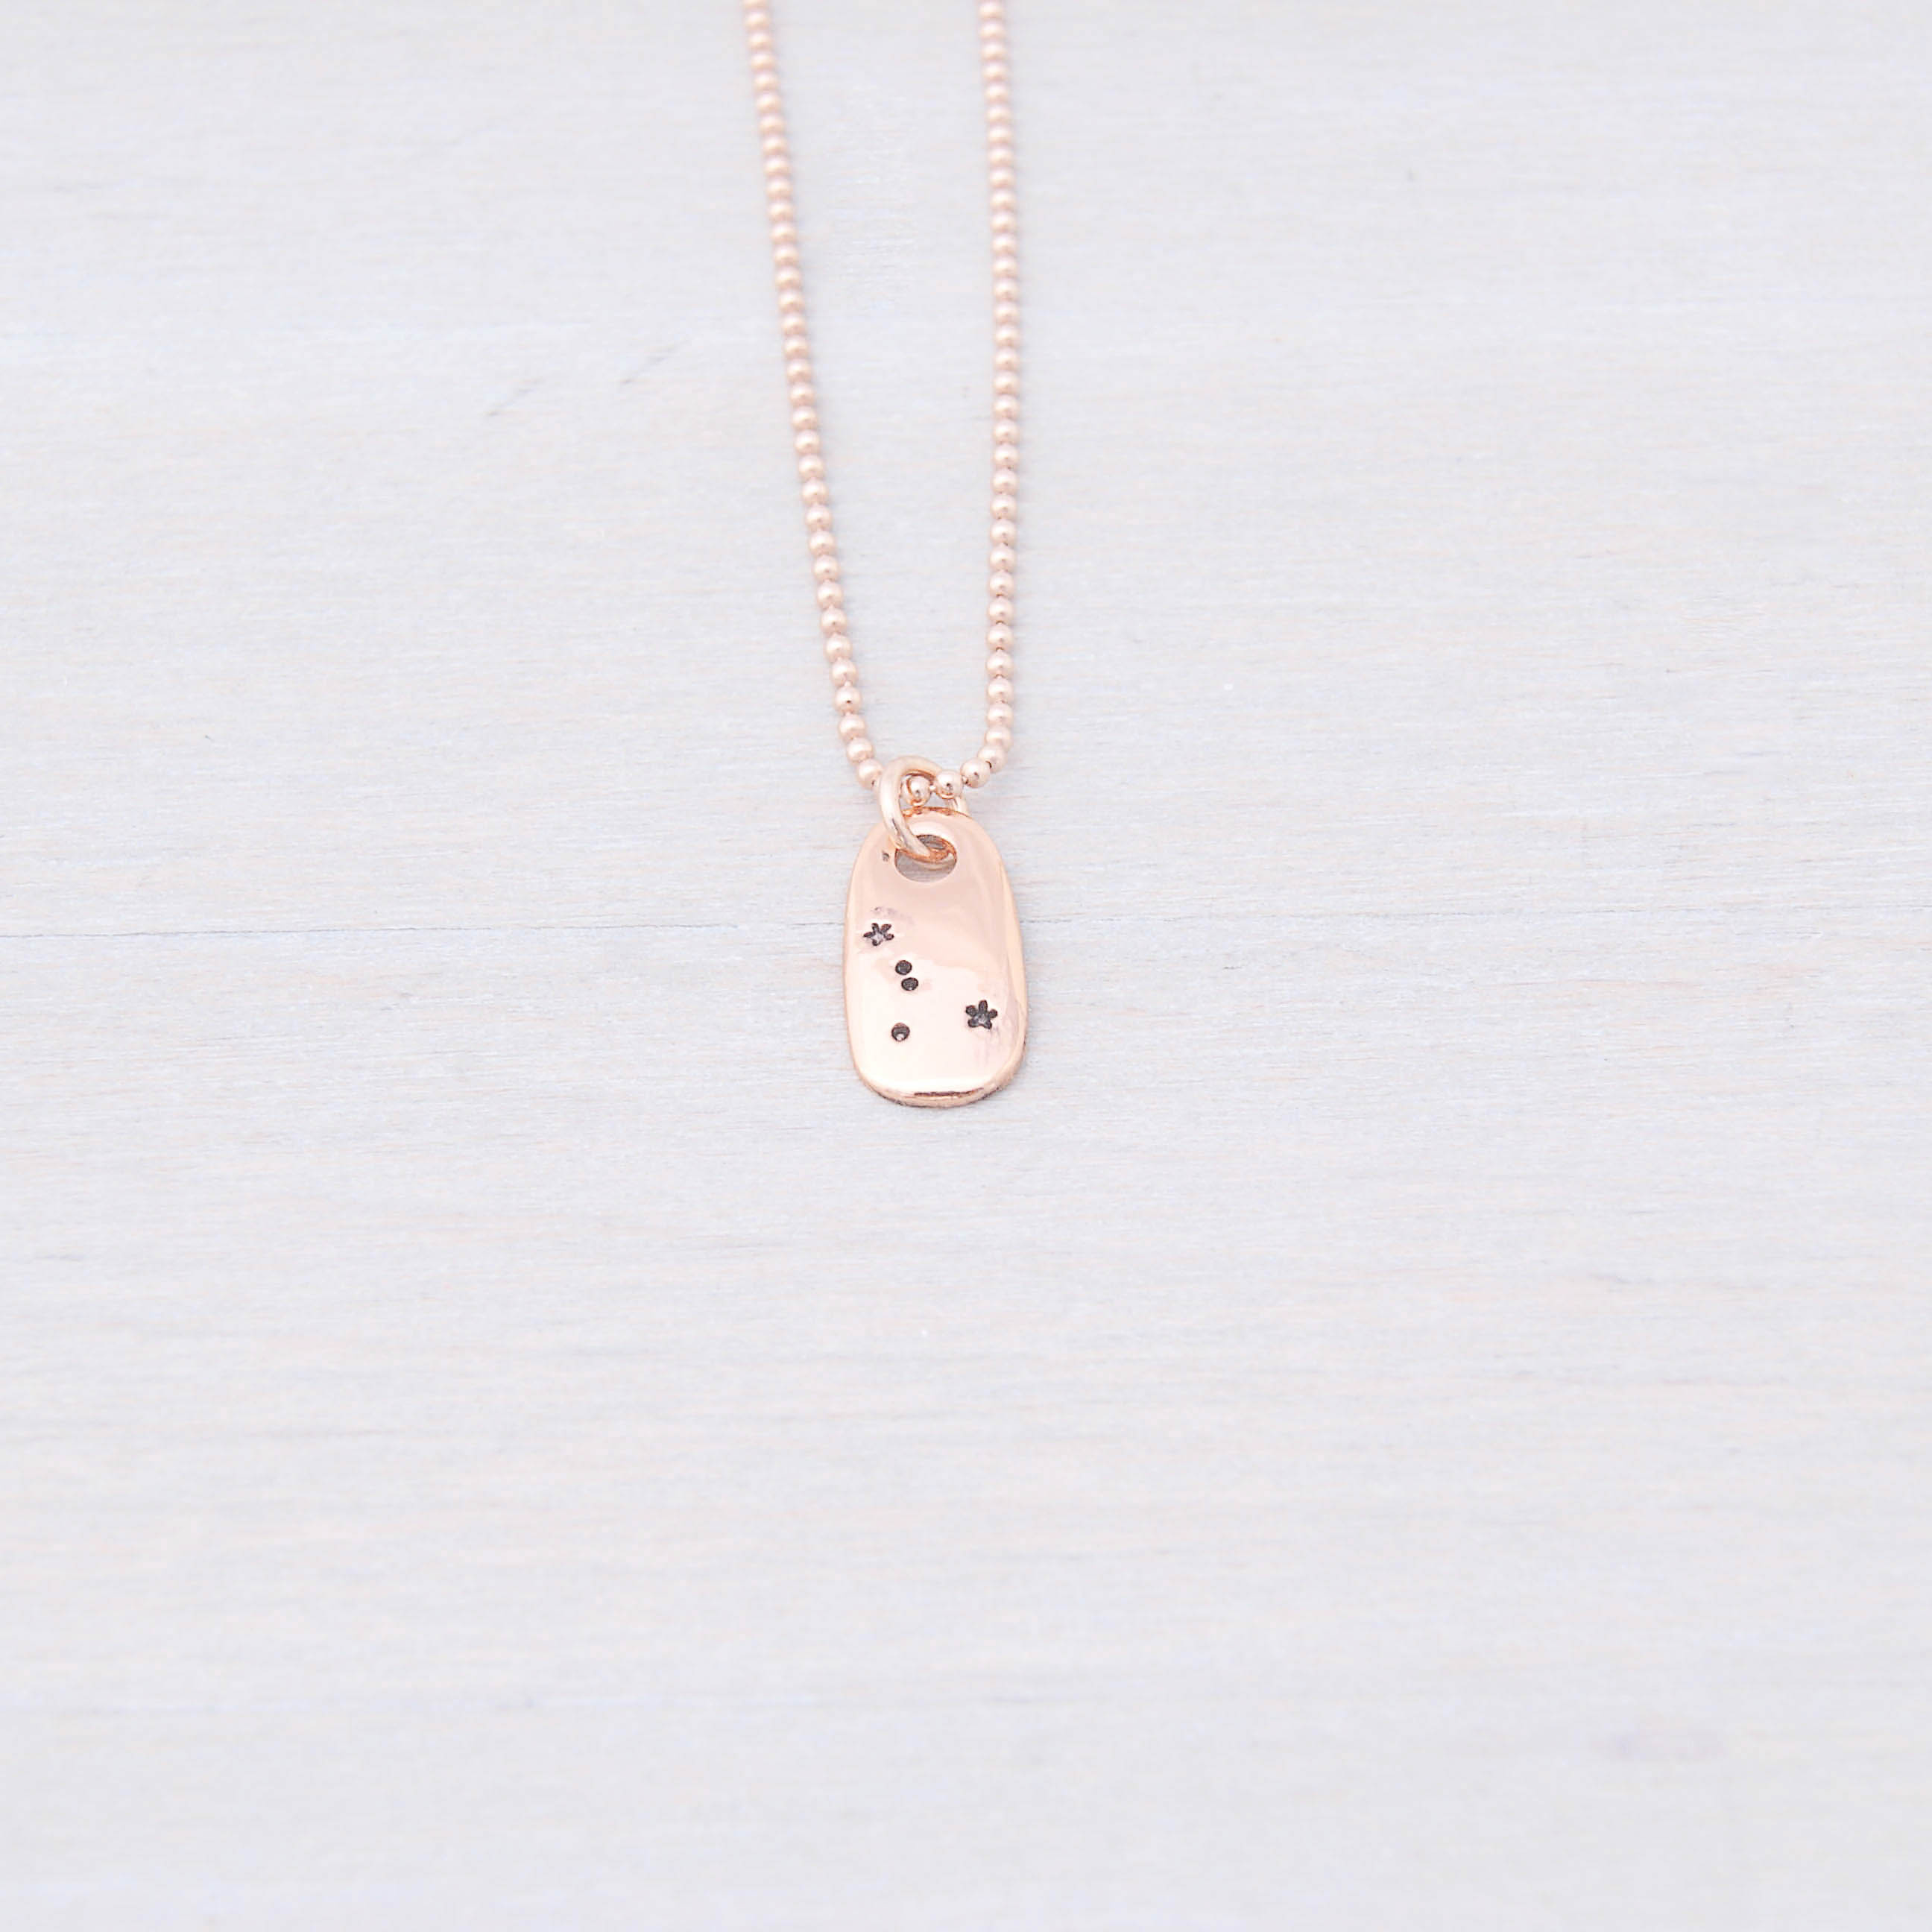 Cancer Zodiac Constellation Necklace in Rose Gold